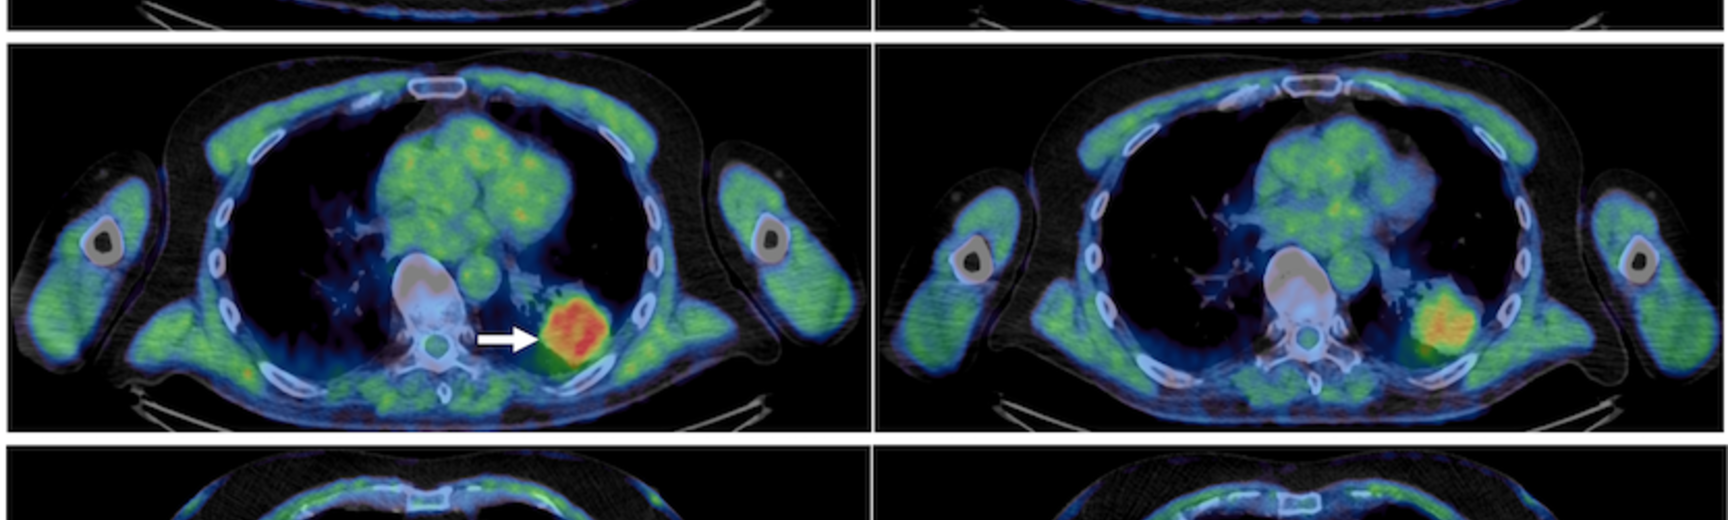 Pre and post atovoquone treatment lung scans in three patients, pre on the left, post on the right. The reduced amount of high intensity red references greater oxygen and thus a reduction in hypoxic environments.